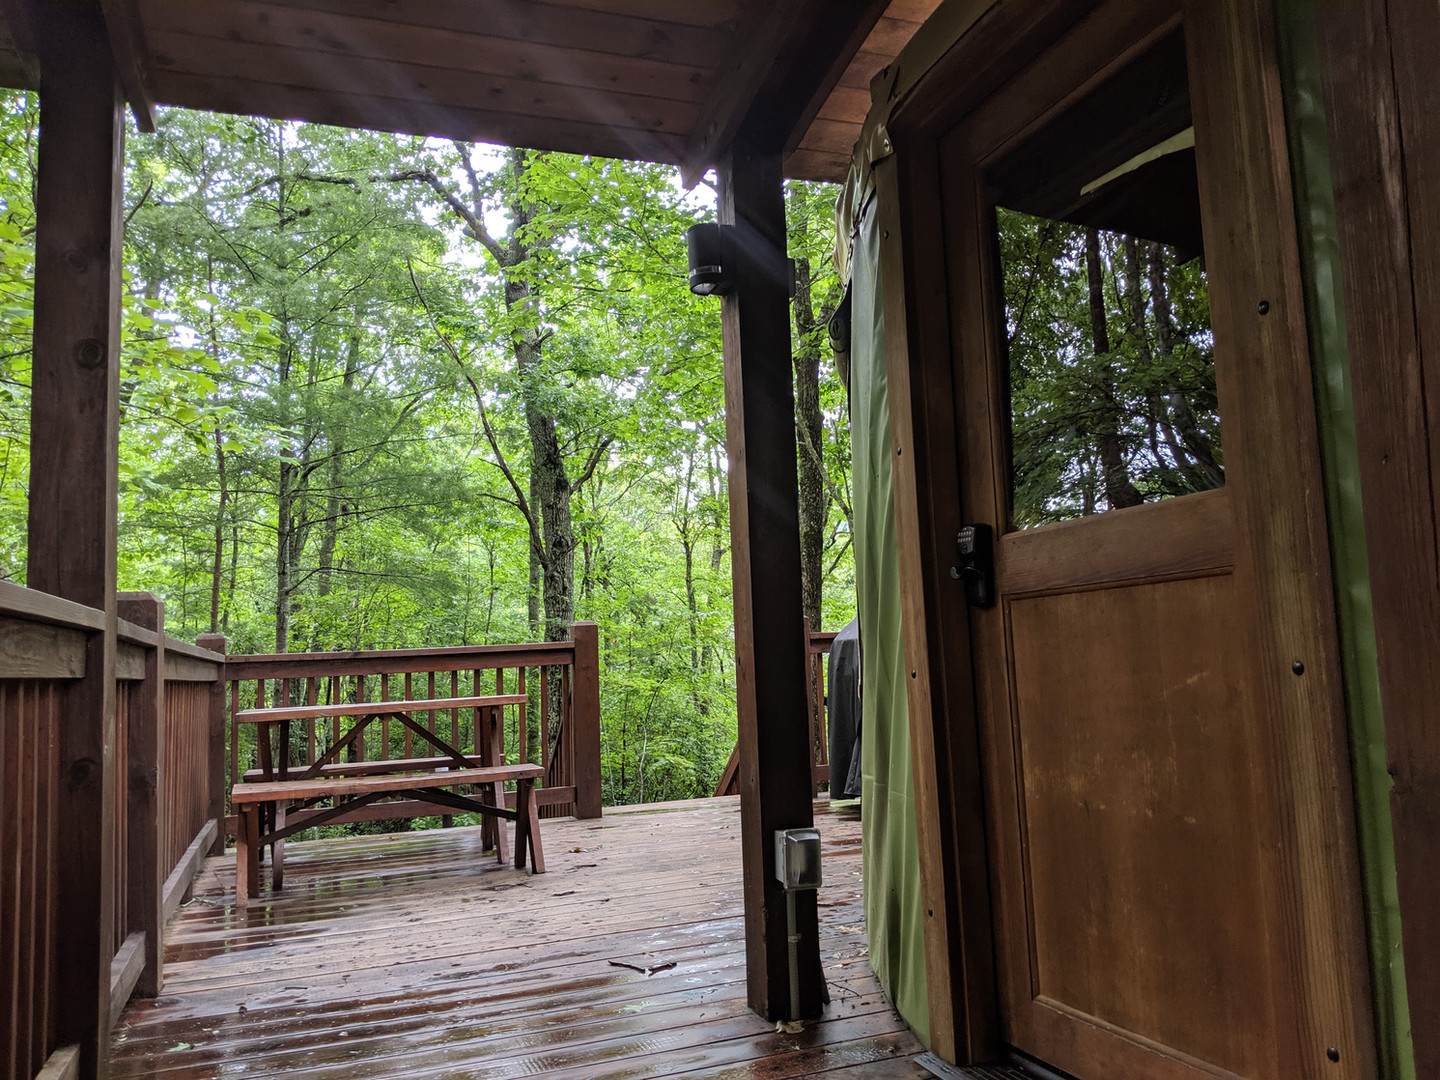 Plenty of room on the deck for a picnic or grilling out.